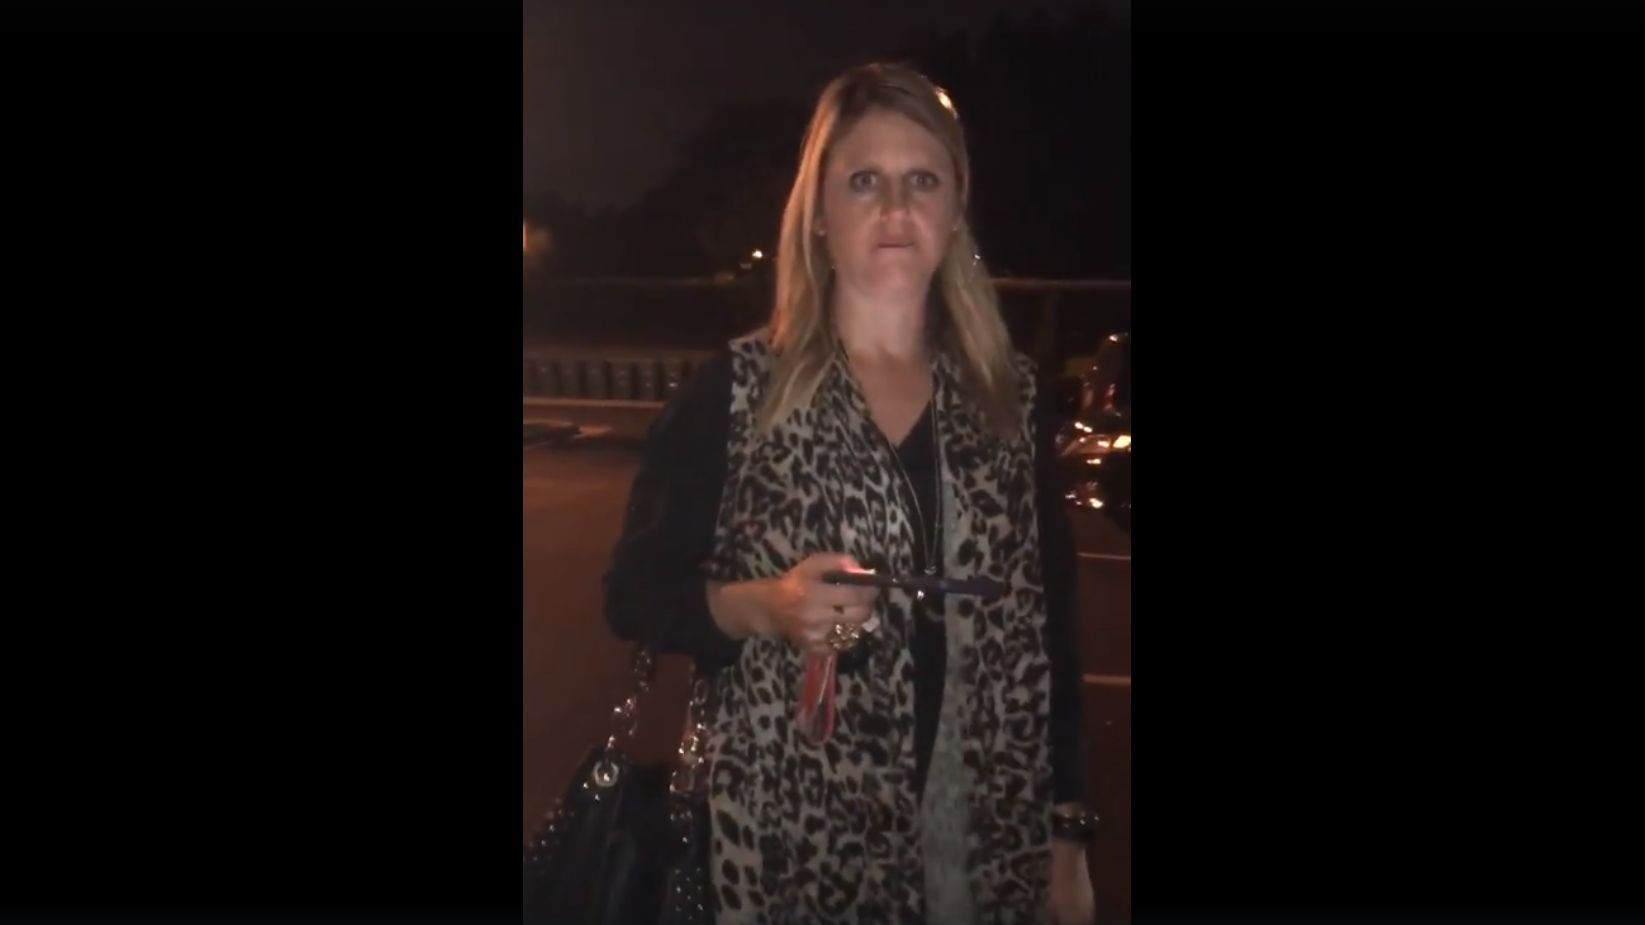 Susan Westwood Arrested for Harassing 2 Black Women in Charlotte Parking Lot